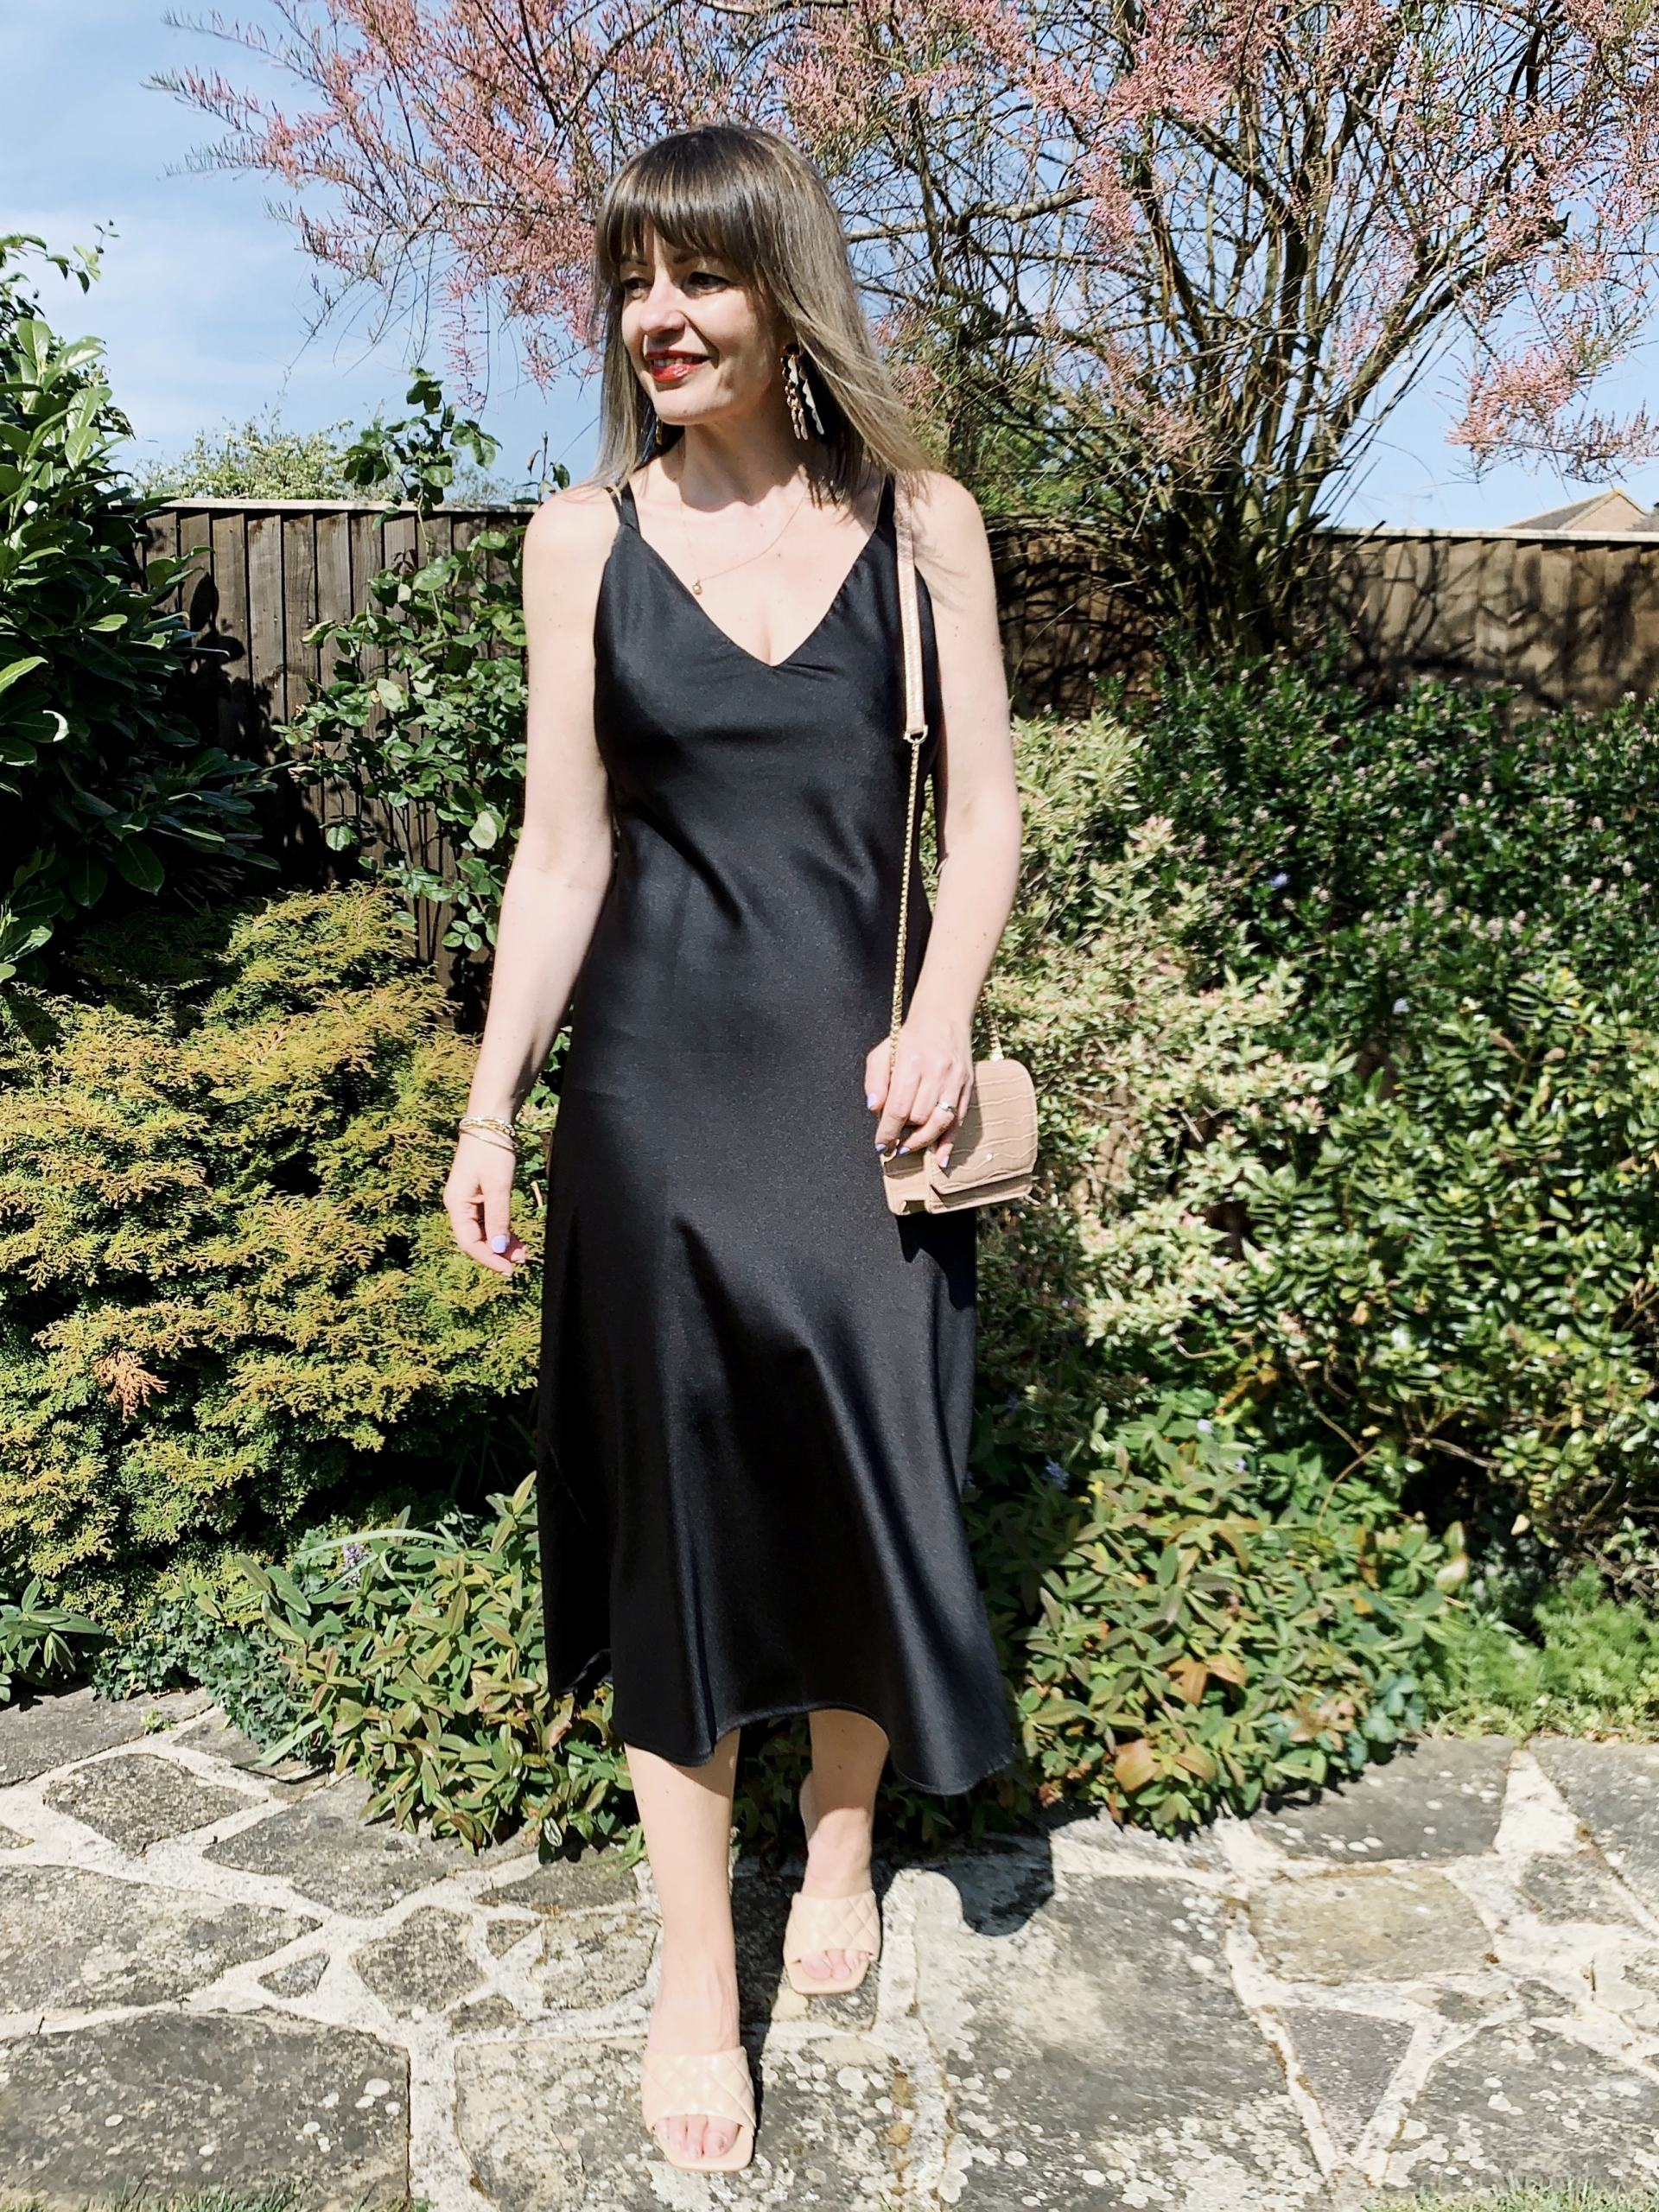 Black slip dress with nude accessories